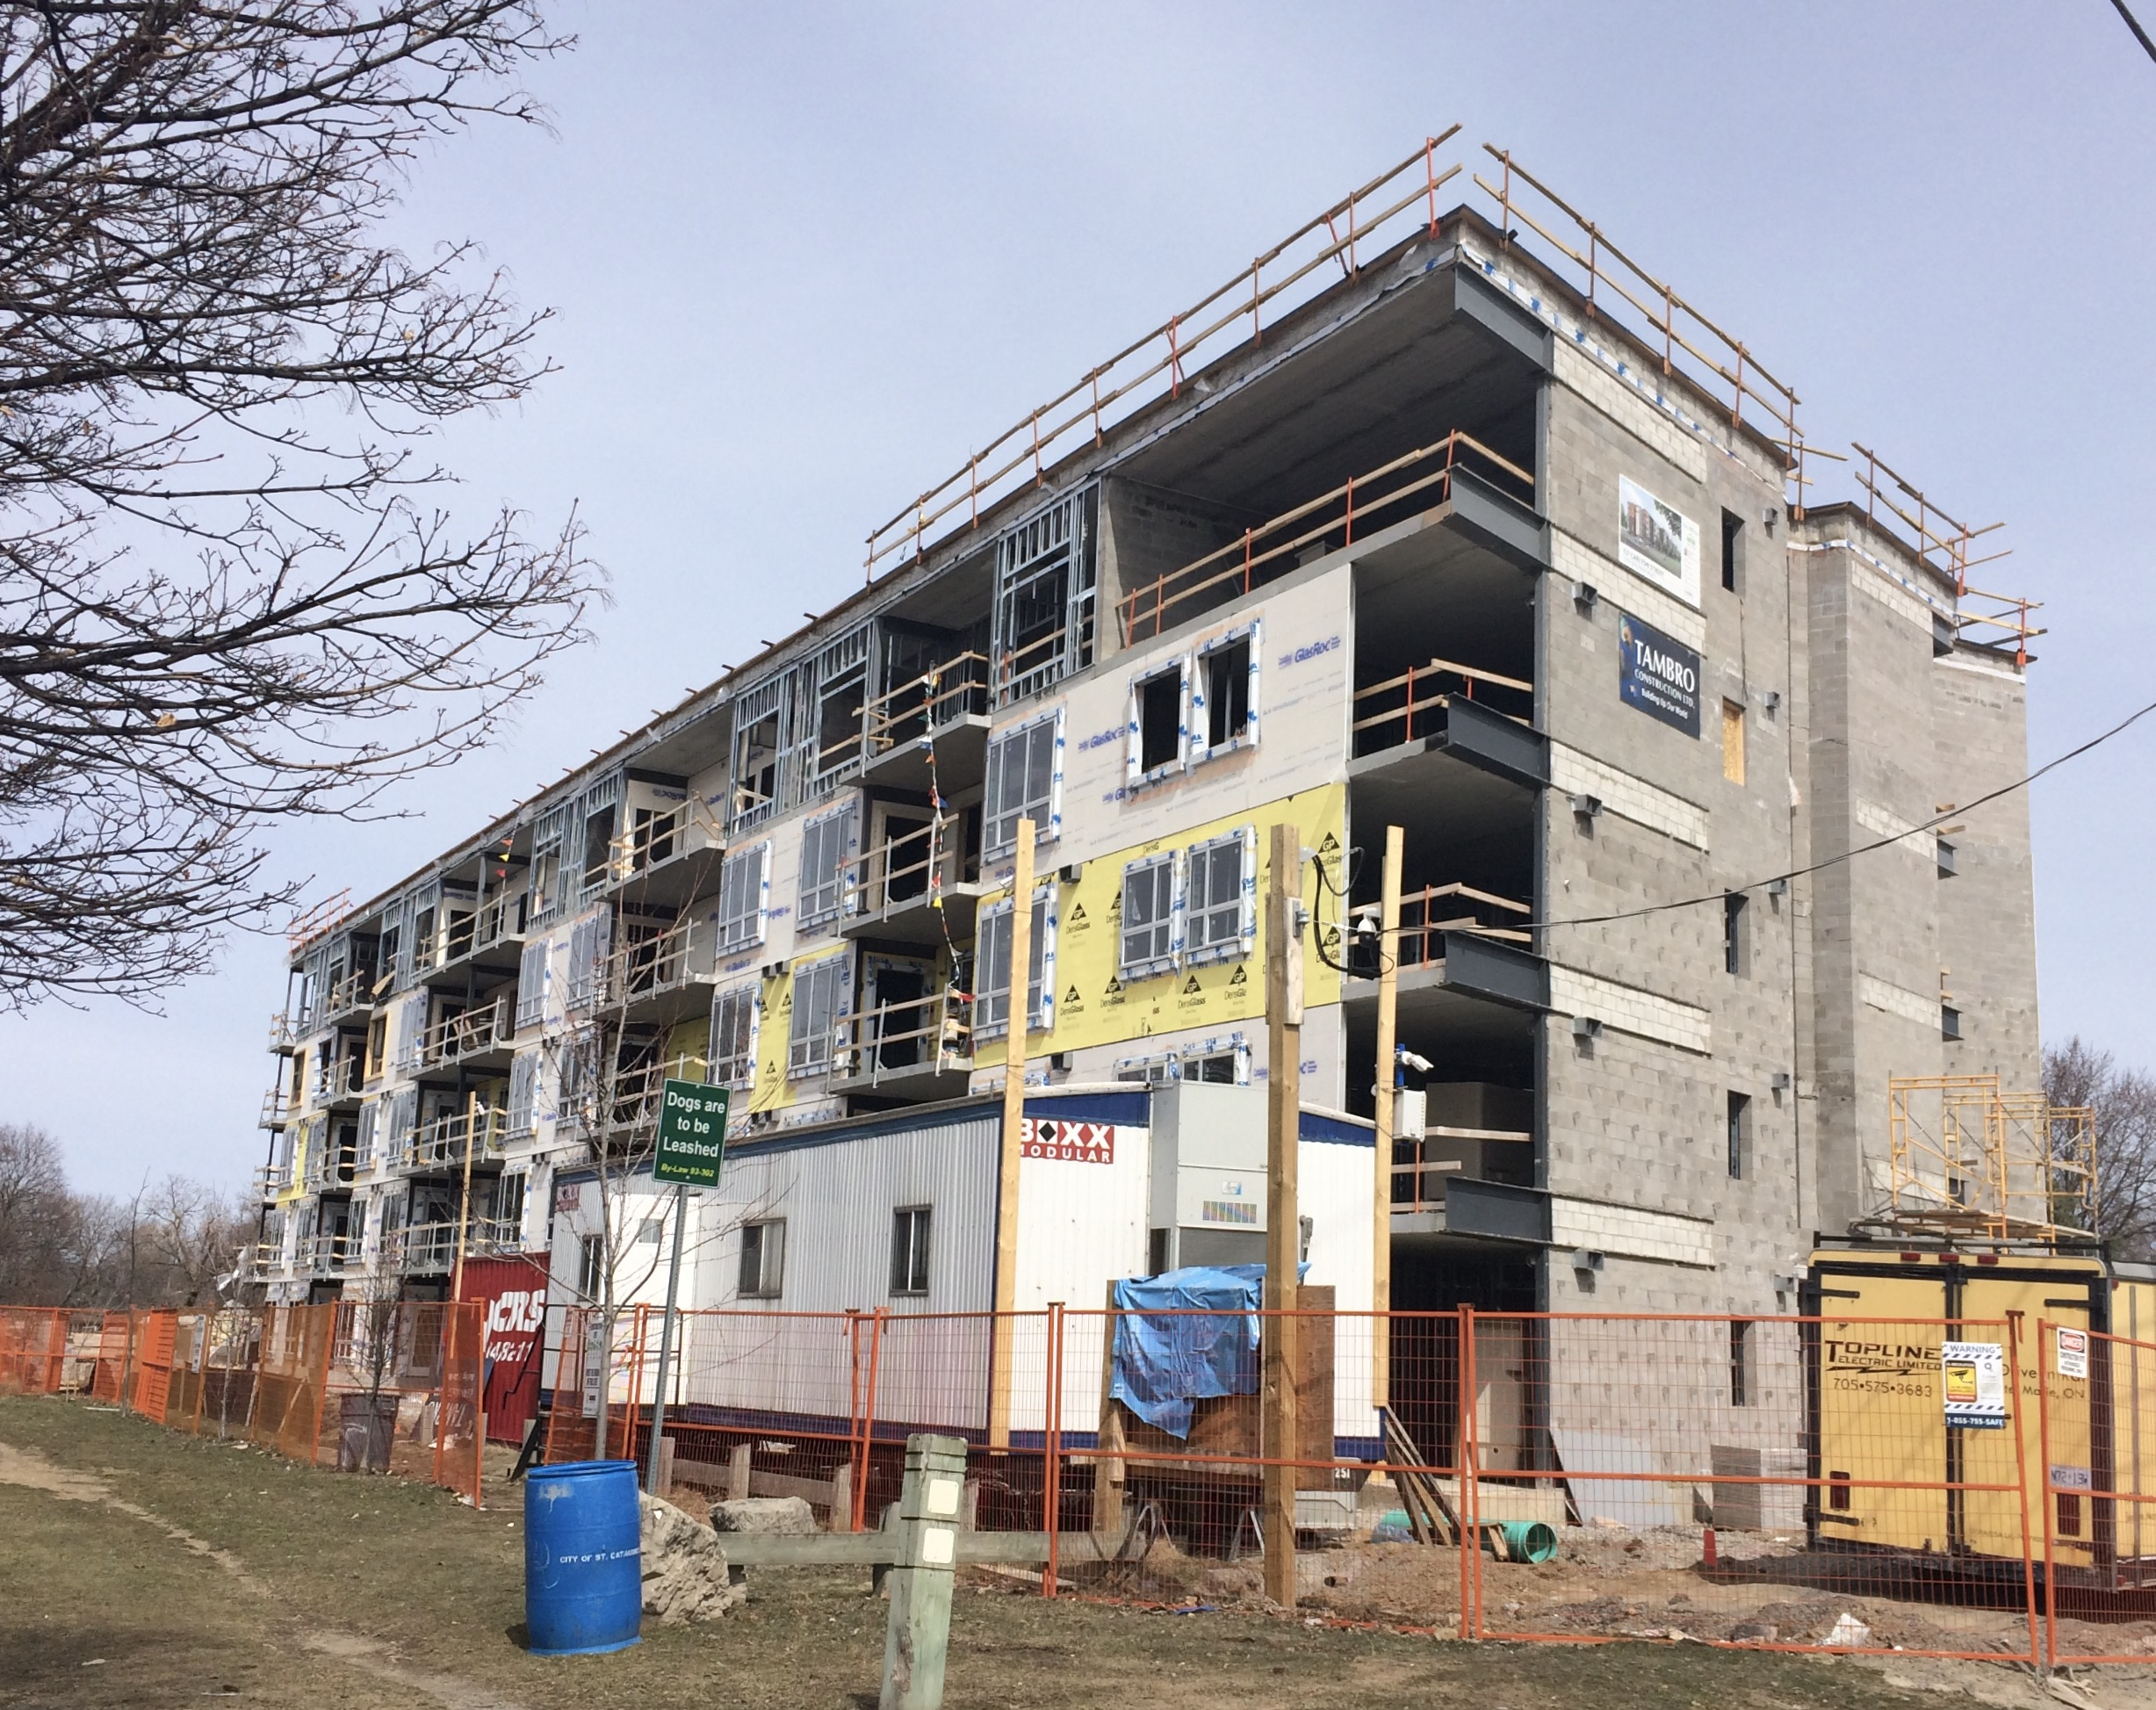 Niagara Regional Housing Carlton St. construction